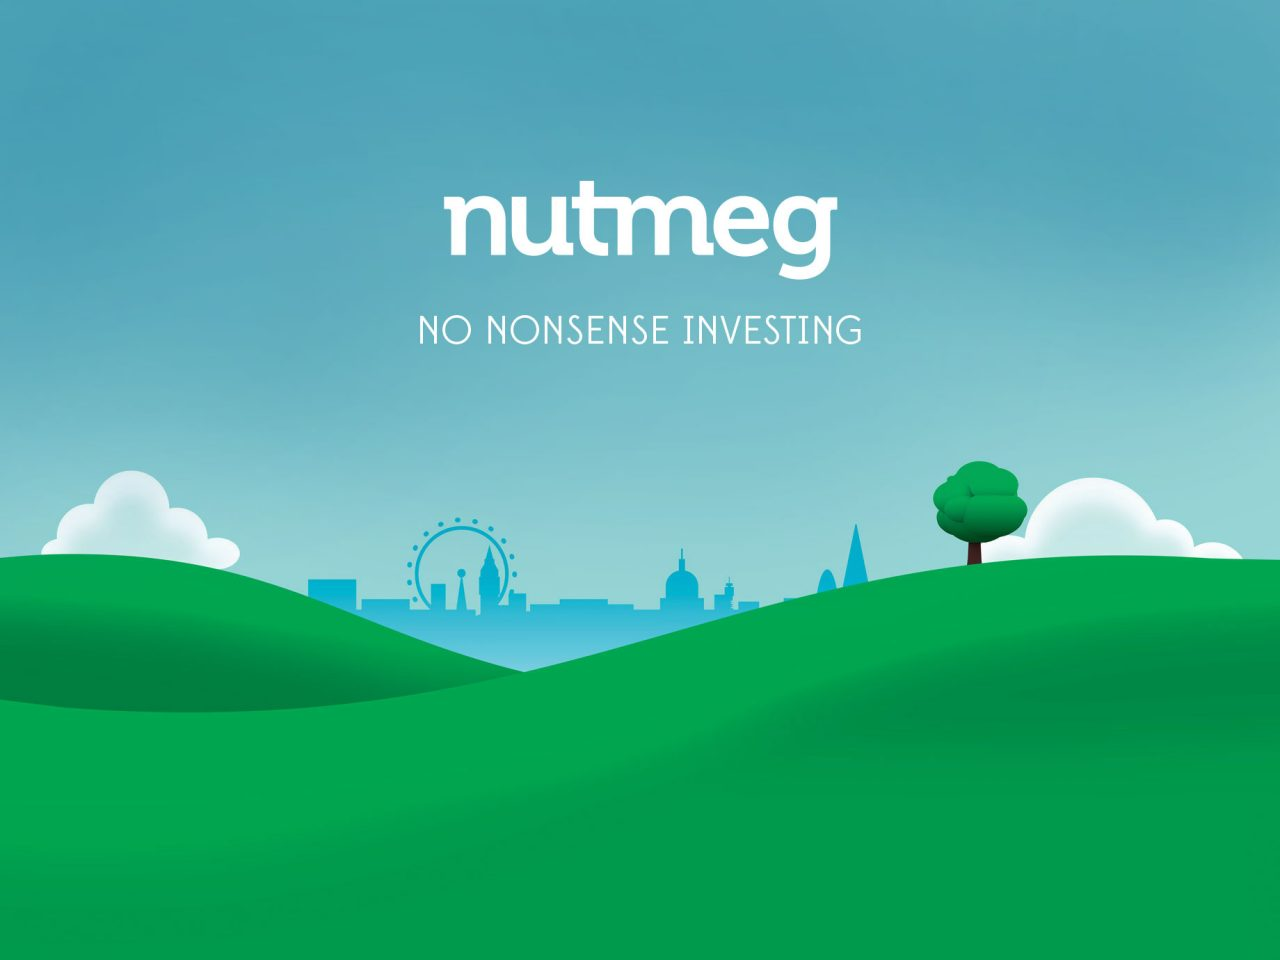 Nutmeg investments